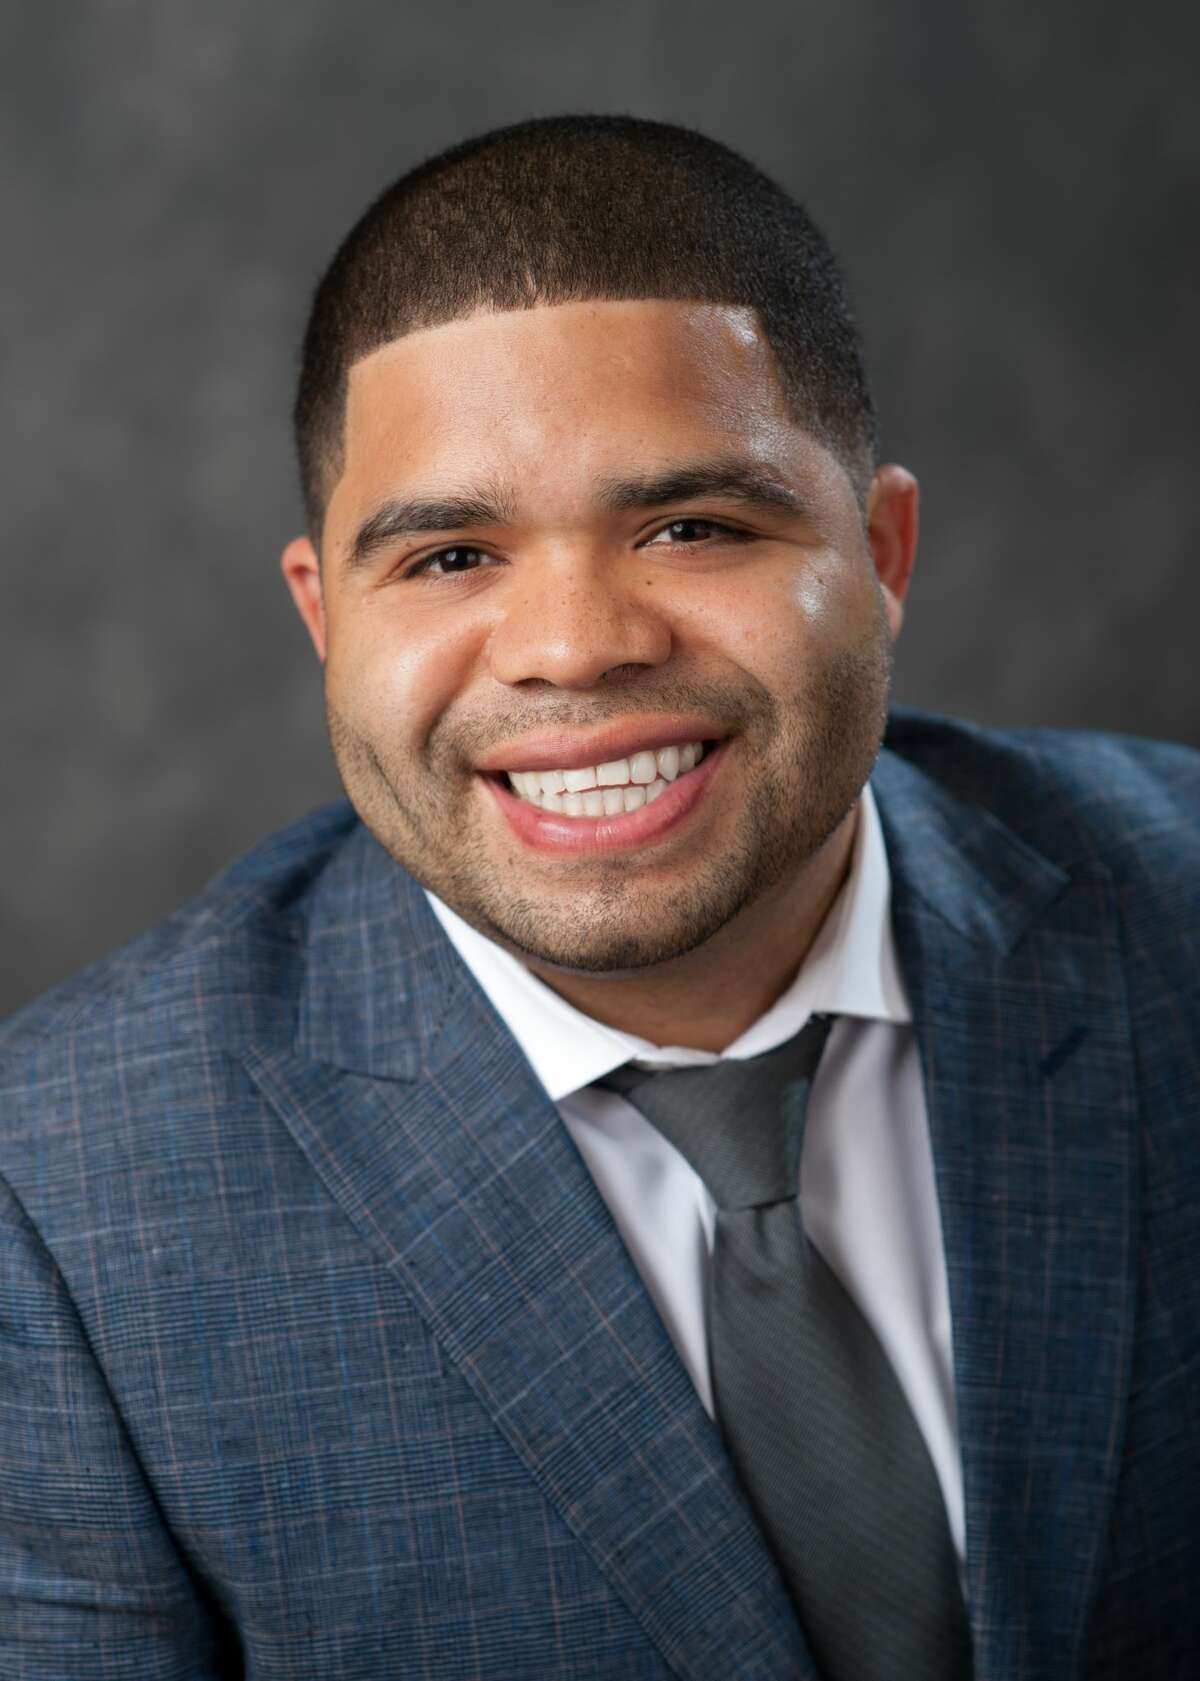 REALTOR® Jason Gutierrez with Berkshire Hathaway HomeServices, Don Johnson REALTORS® in San Antonio primarily works with first-time homebuyers.